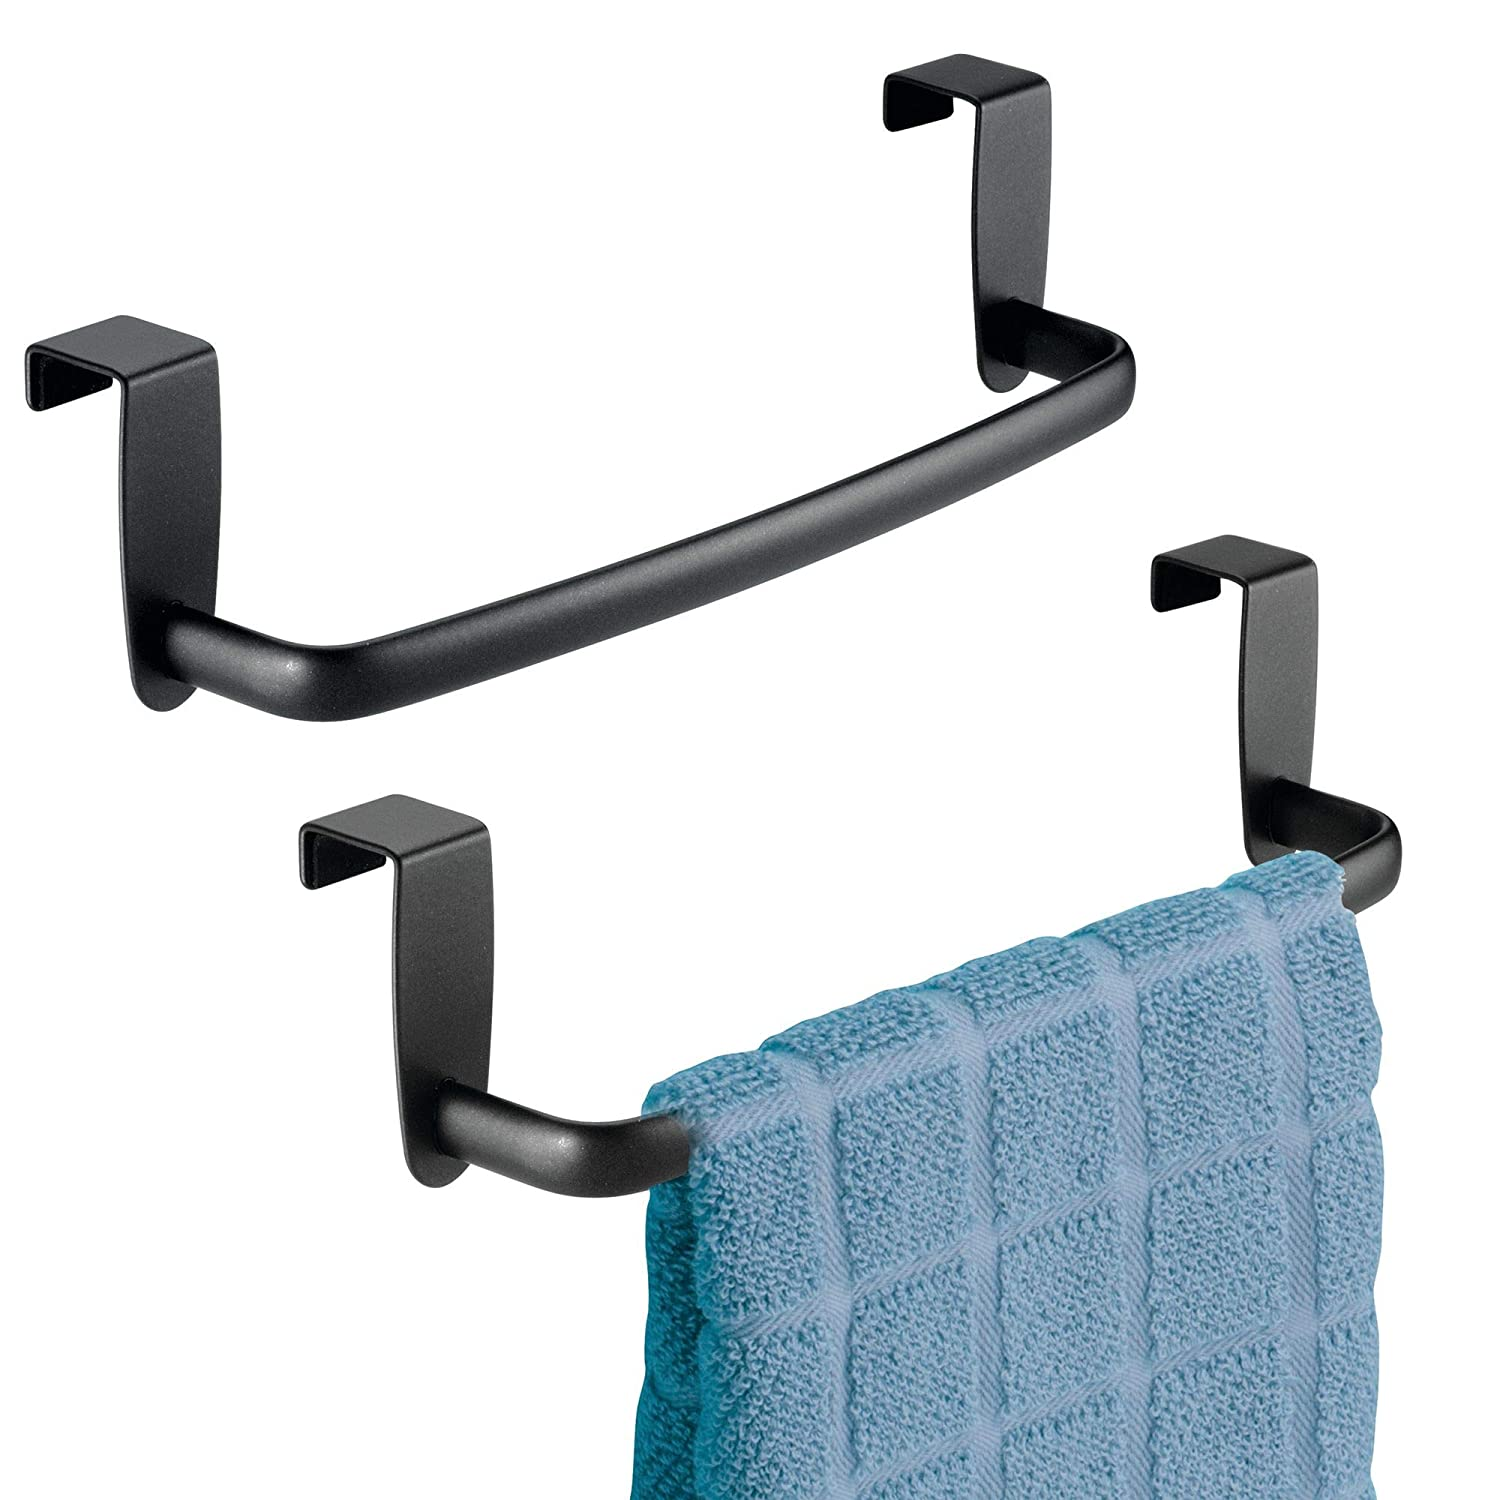 "mDesign Kitchen Over Cabinet Metal Towel Bar - Hang on Inside or Outside of Doors, for Hand, Dish, and Tea Towels - 9.75"" Wide, 2 Pack - Matte Black"